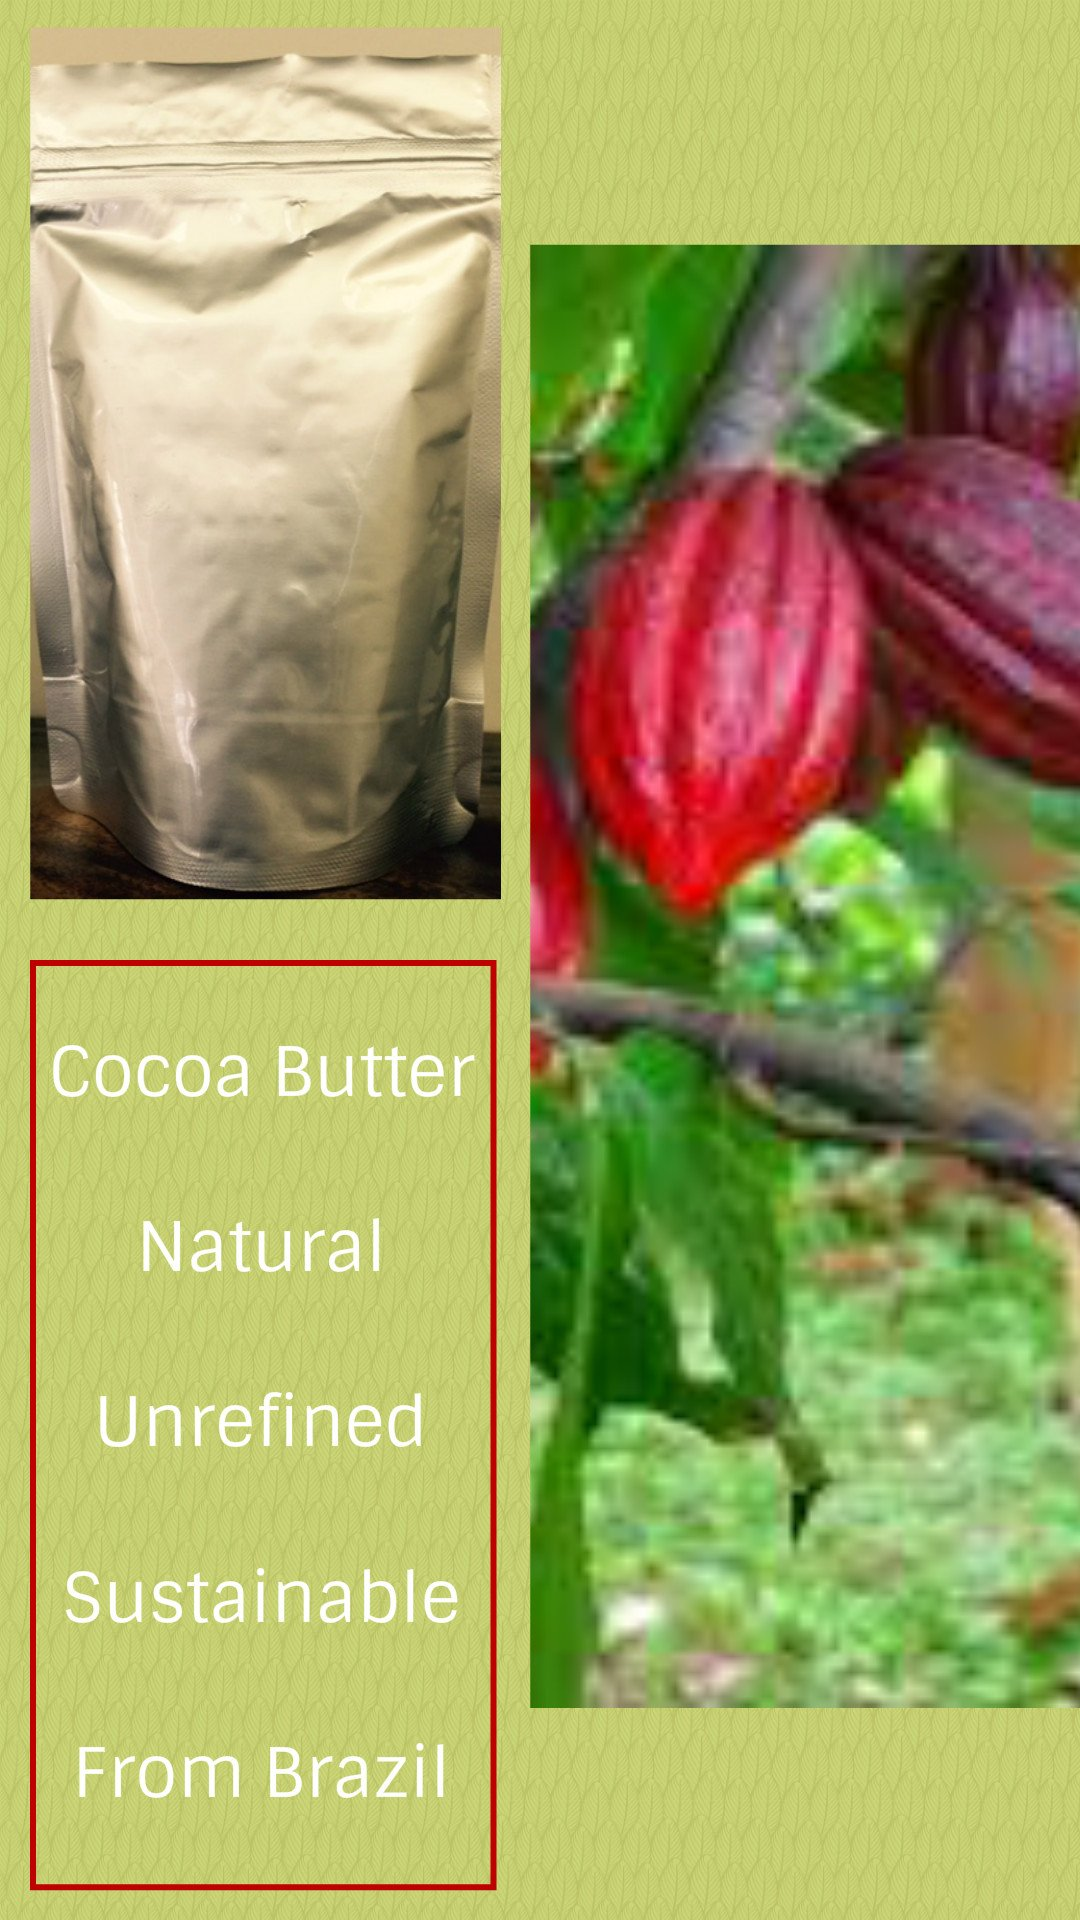 Cocoa Butter Brazil - Natural Unrefined - 64 Oz (4 lb) - 100% Natural - WHOLESALE PRICE and - Extraction: Cold Pressed by Paris Fragrances & Cosmetics Supplies, INC (Image #1)